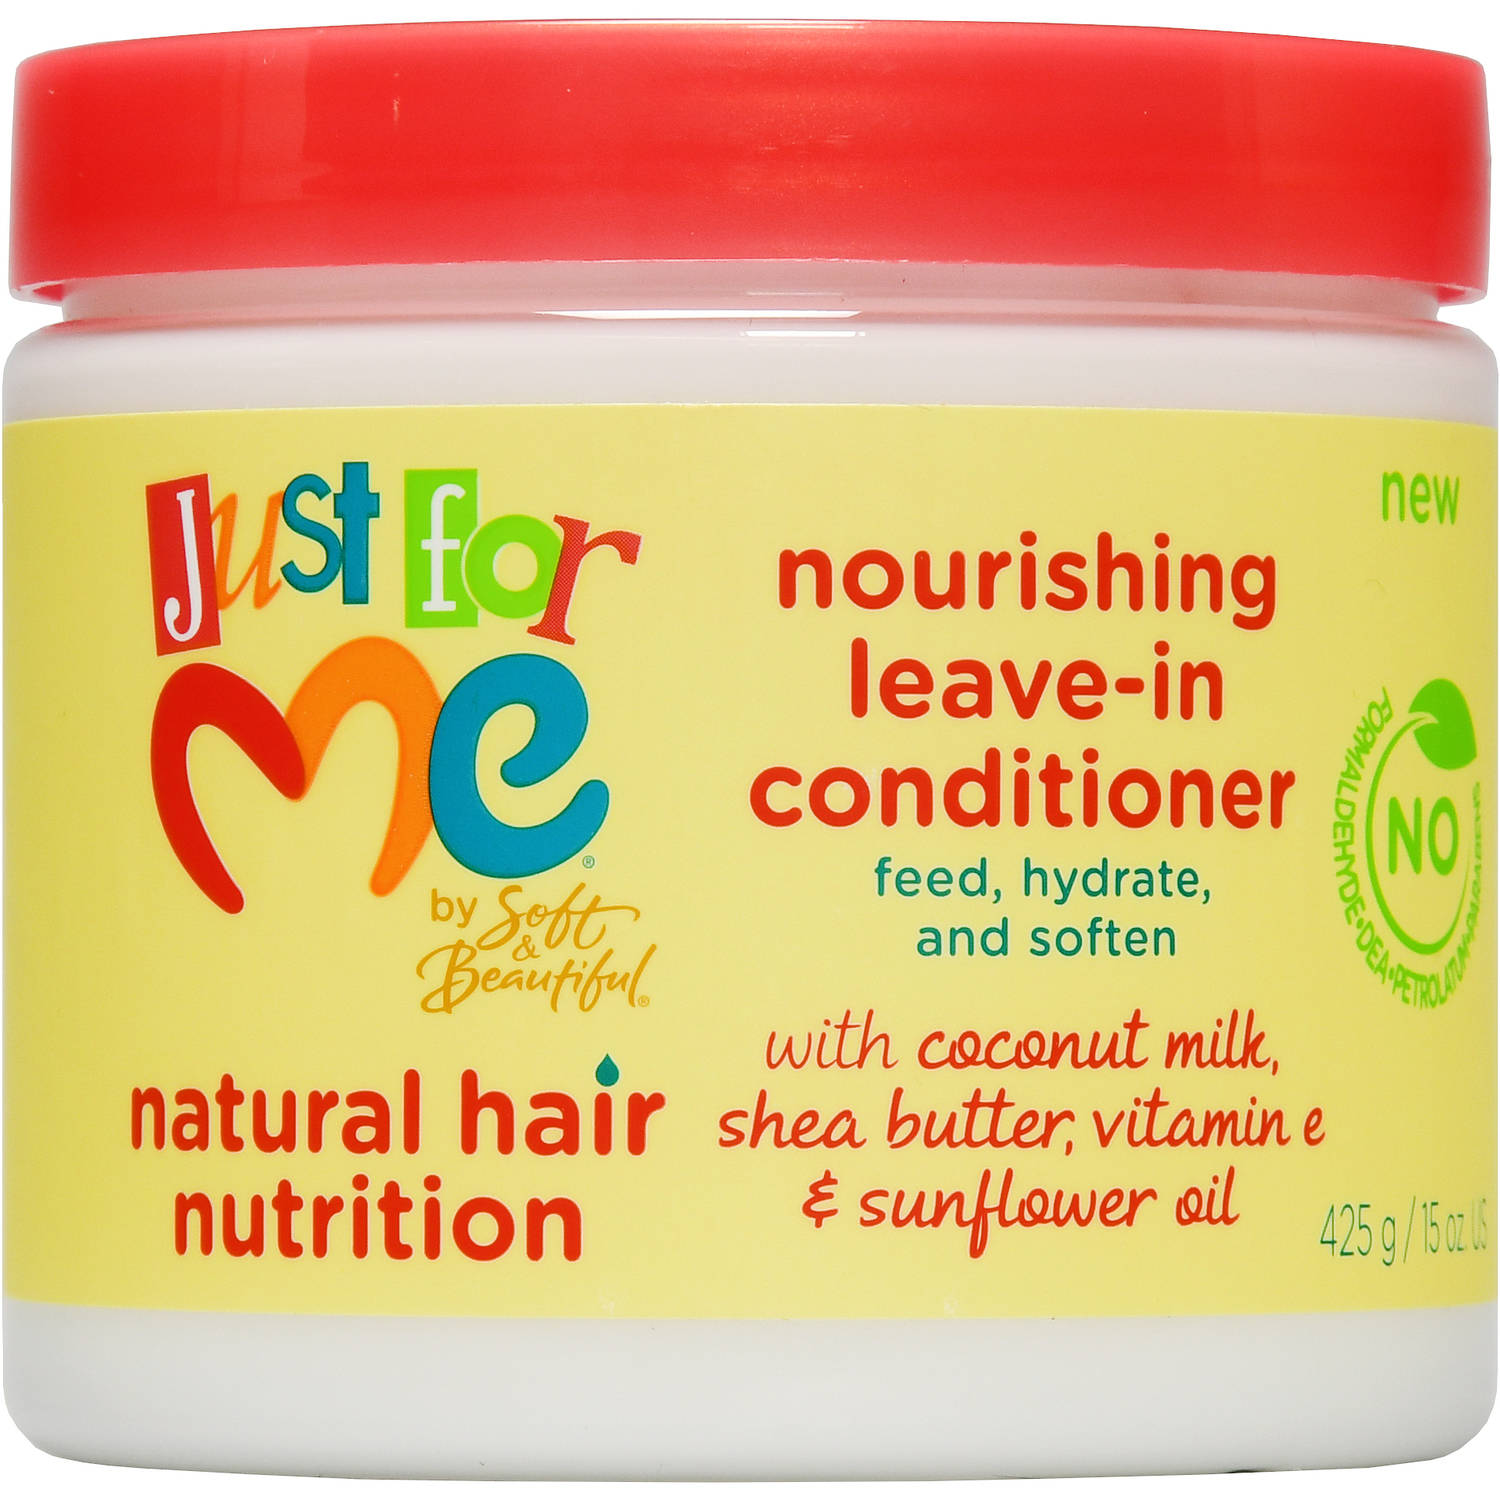 Just For Me Jfm Nourishing Leave-in